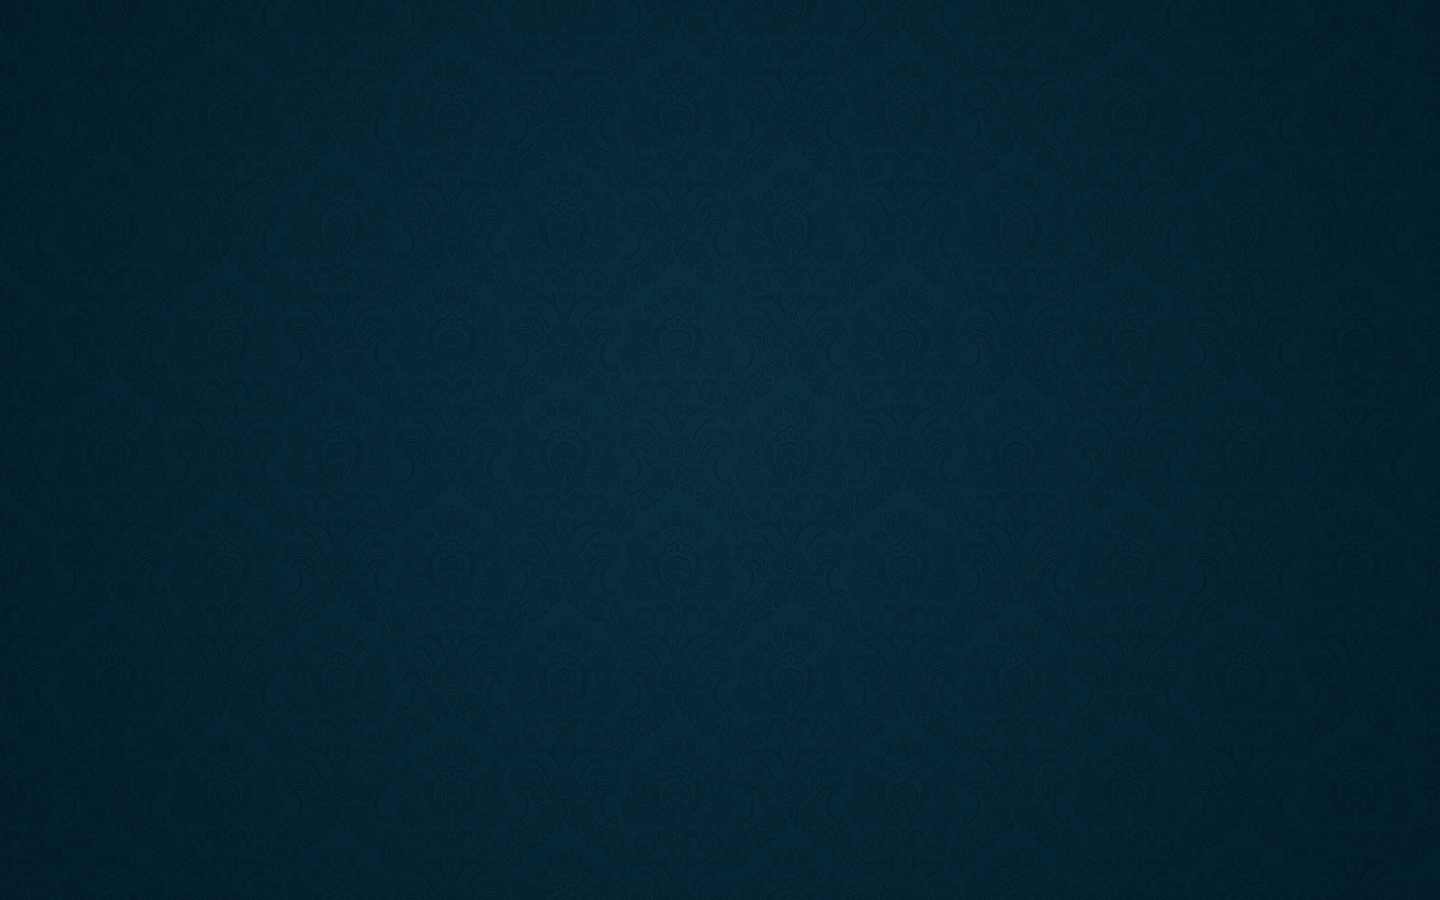 Solid Color Backgrounds Minimalistic wallpaper 1440x900